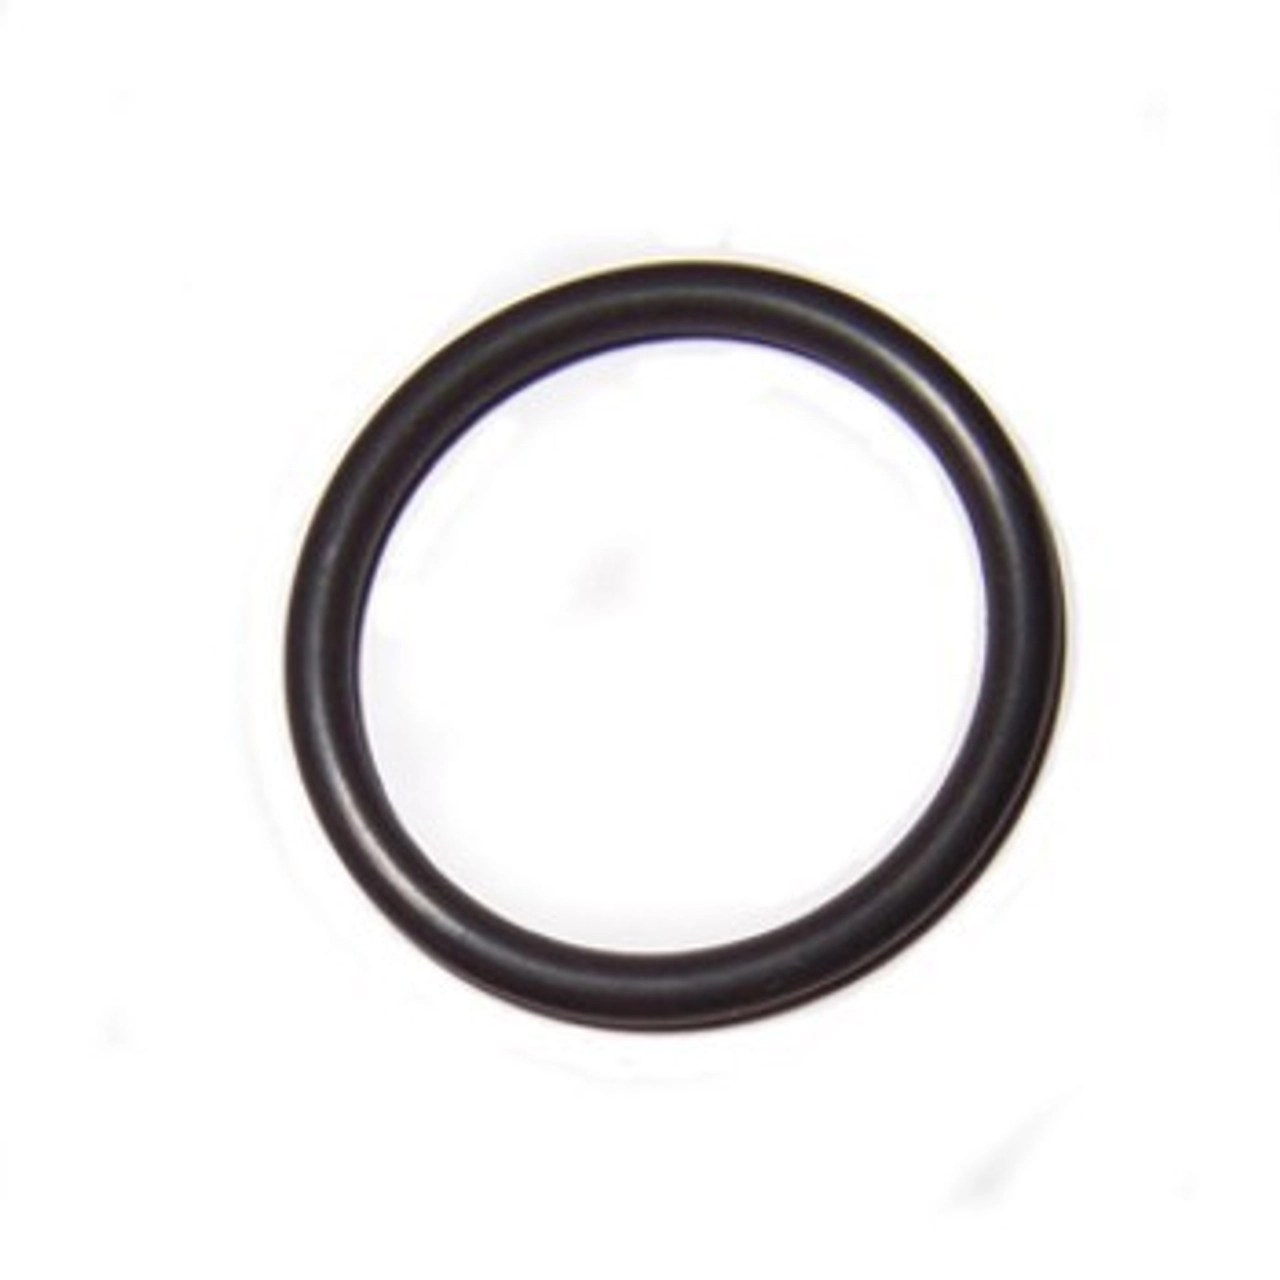 hight resolution of oil fill riser to valve cover o ring 94 07